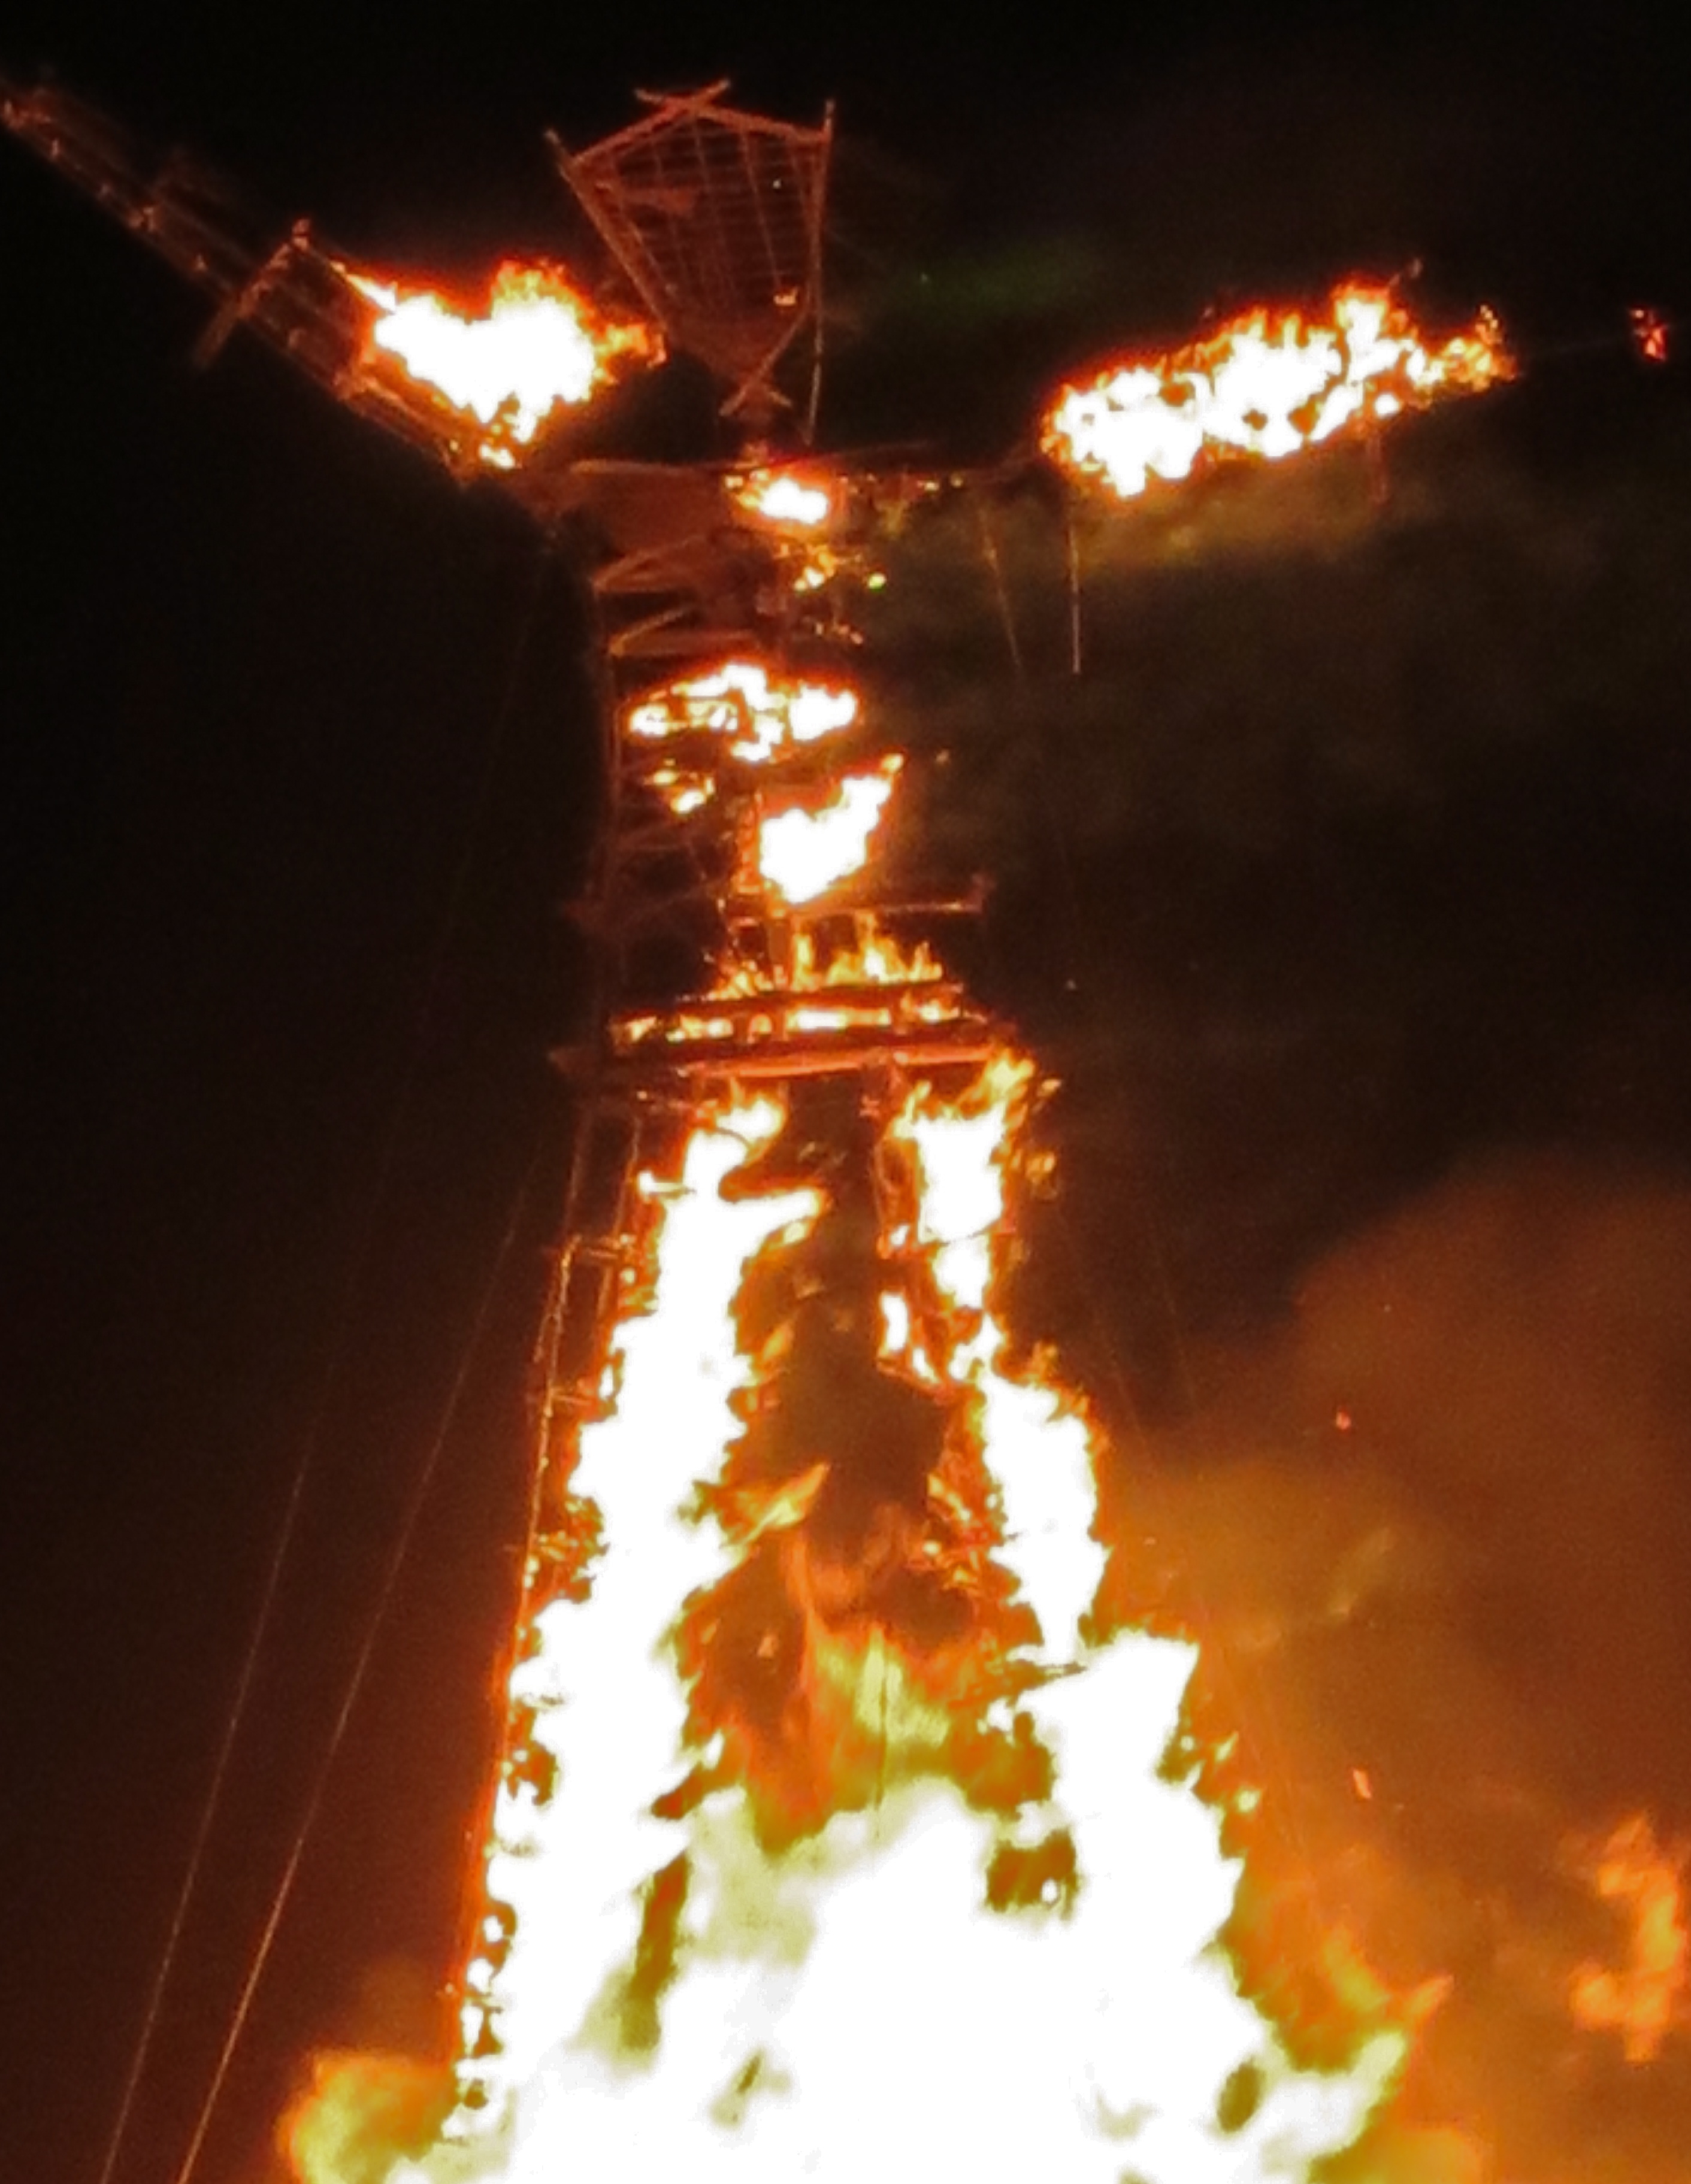 The burning of the Man gives Burning Man its name.